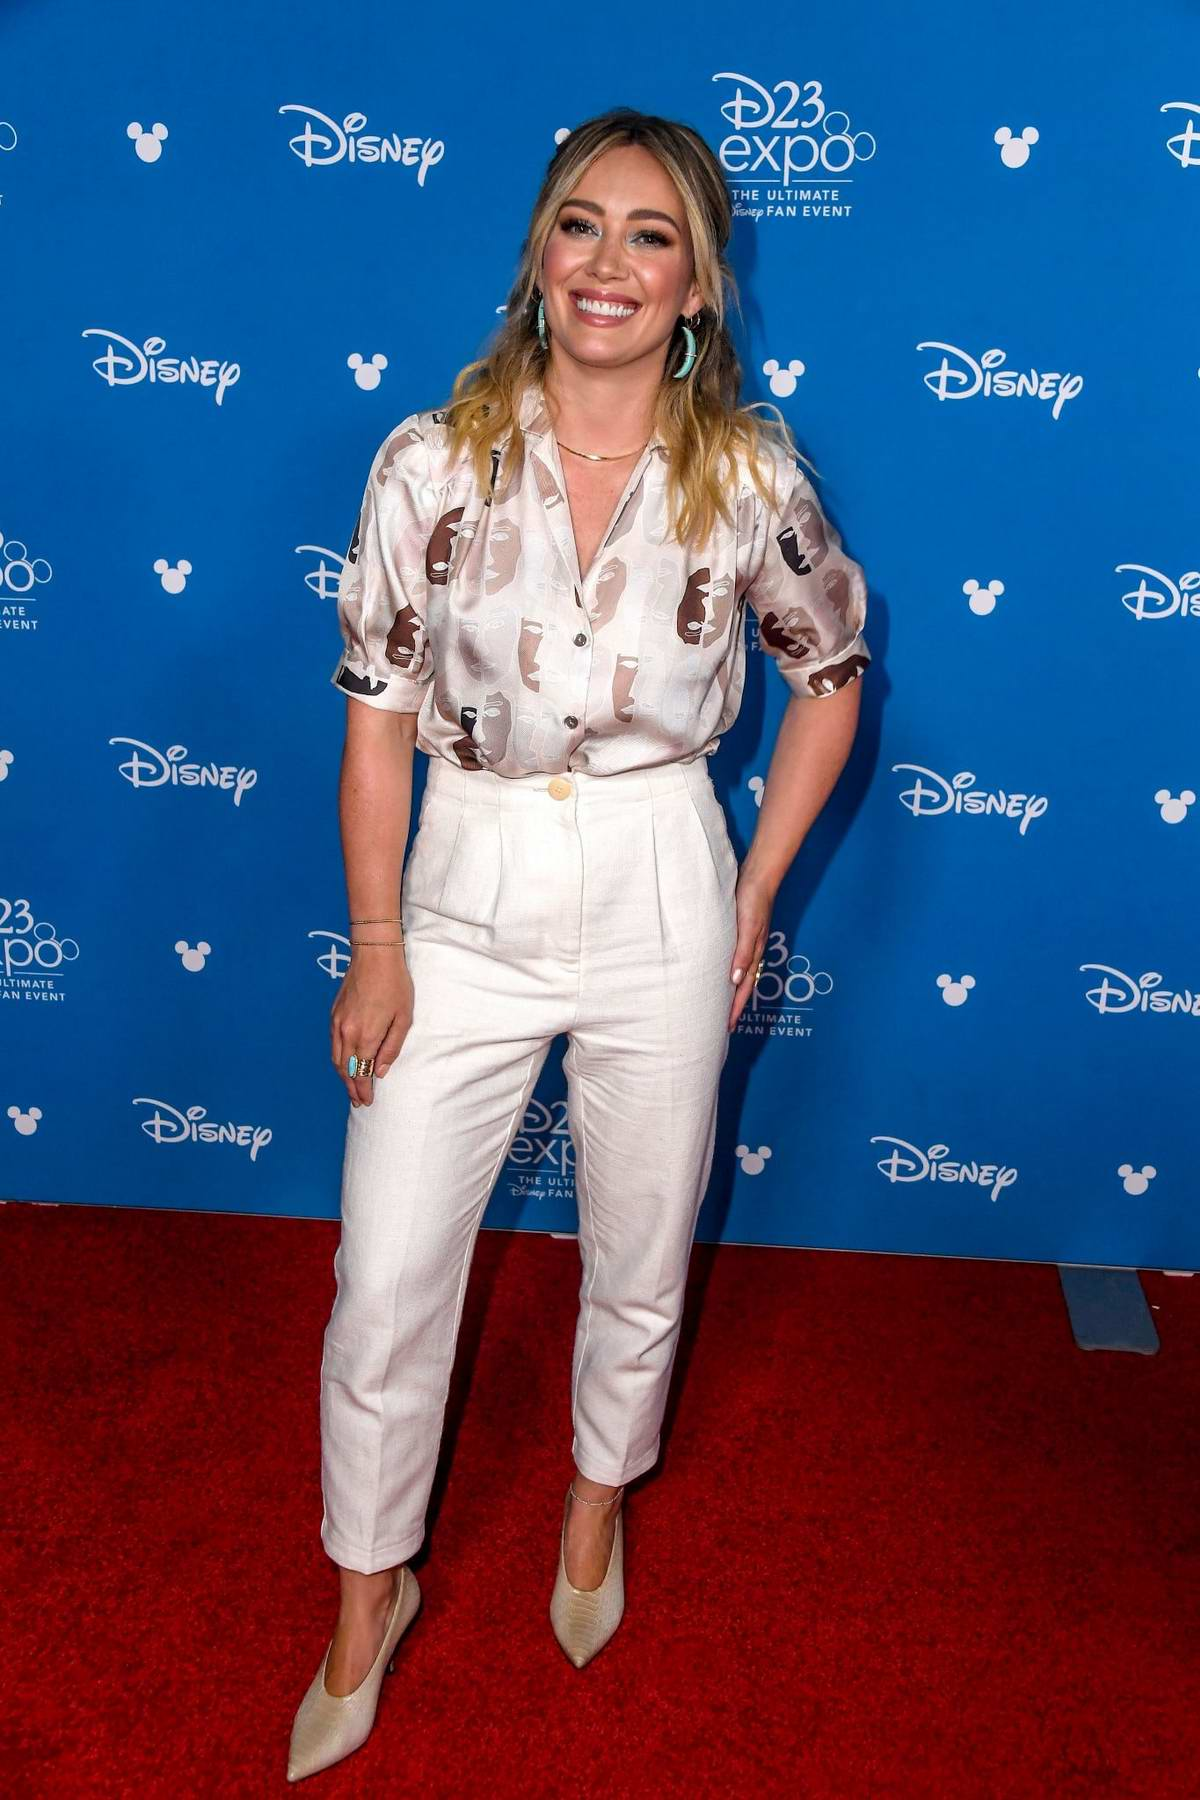 Hilary Duff attends Disney D23 Expo 2019 at Anaheim Convention Center in Anaheim, California